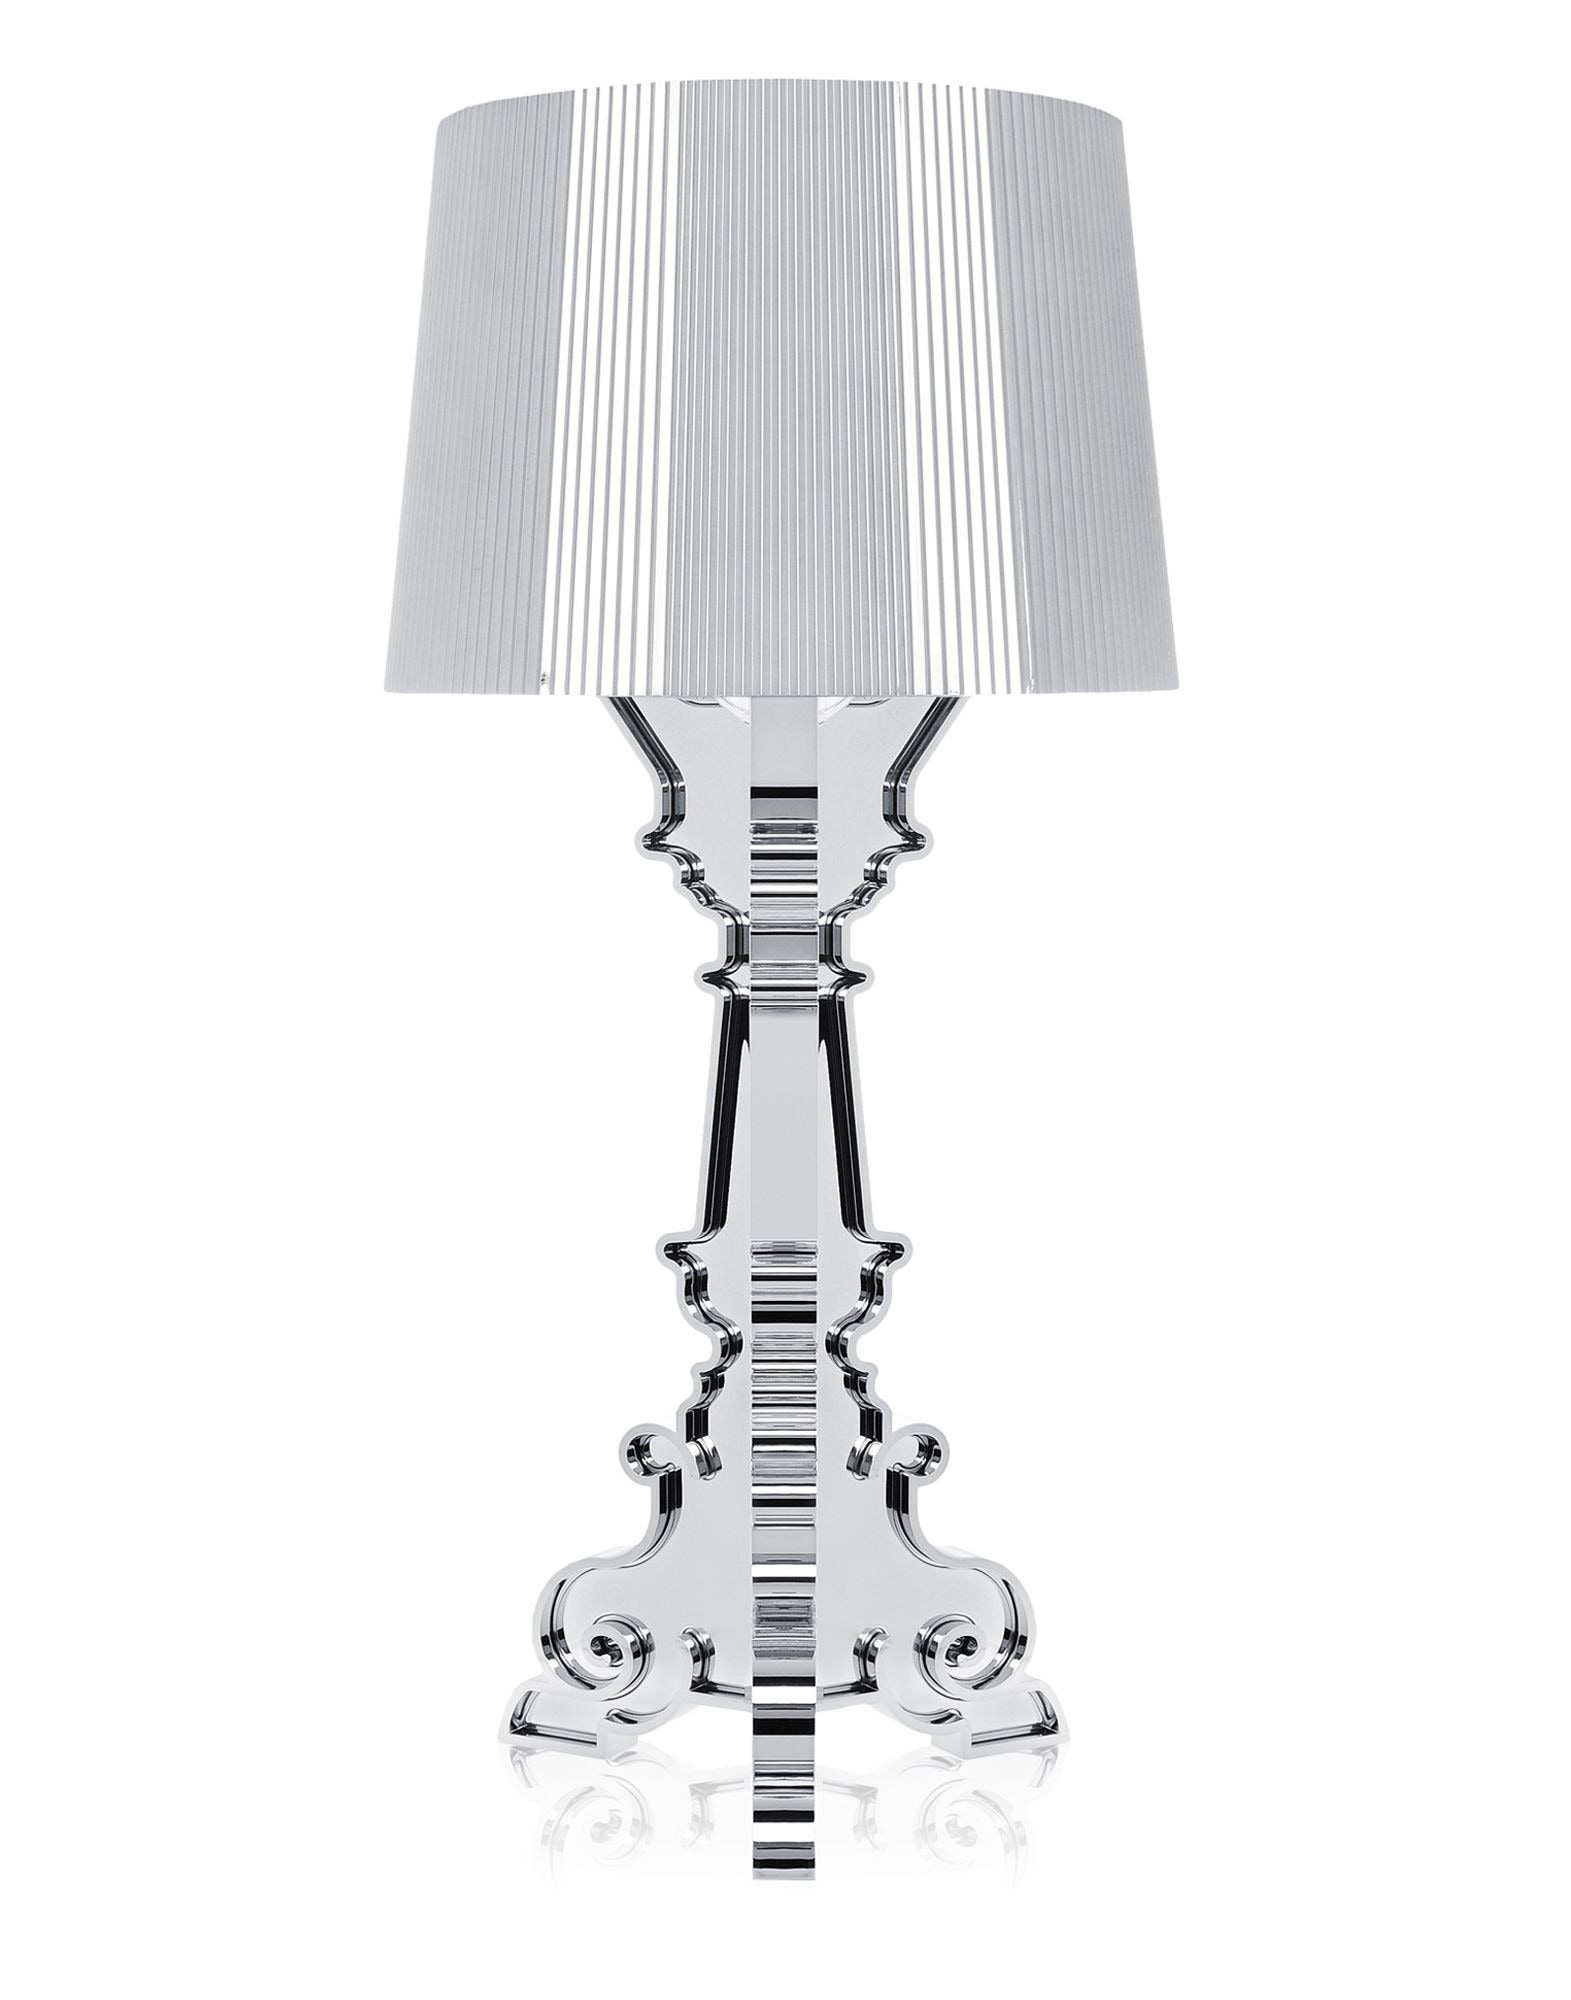 Kartell bourgie table lamp chrome plated modern planet kartell bourgie table lamp chrome plated 1 geotapseo Choice Image